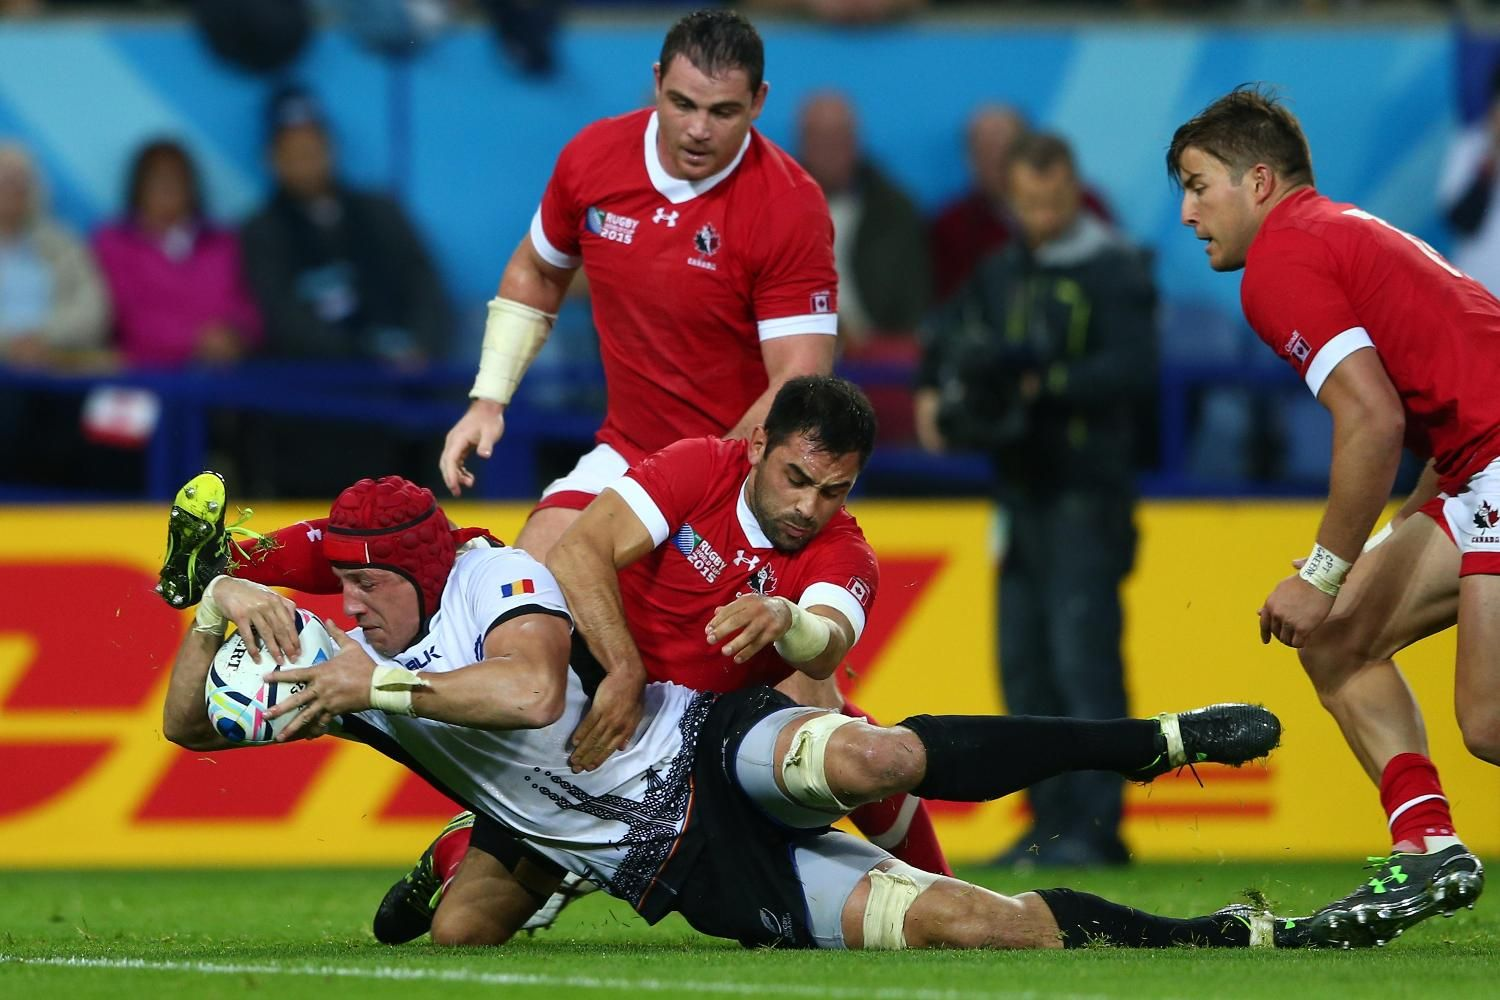 Canada 15 17 Romania Rwc2015 Can Vs Rom Rednation Vs Rugbyromania It S The Moment That Changes The Match As Mihai Macovei Gets Down To Score His Second